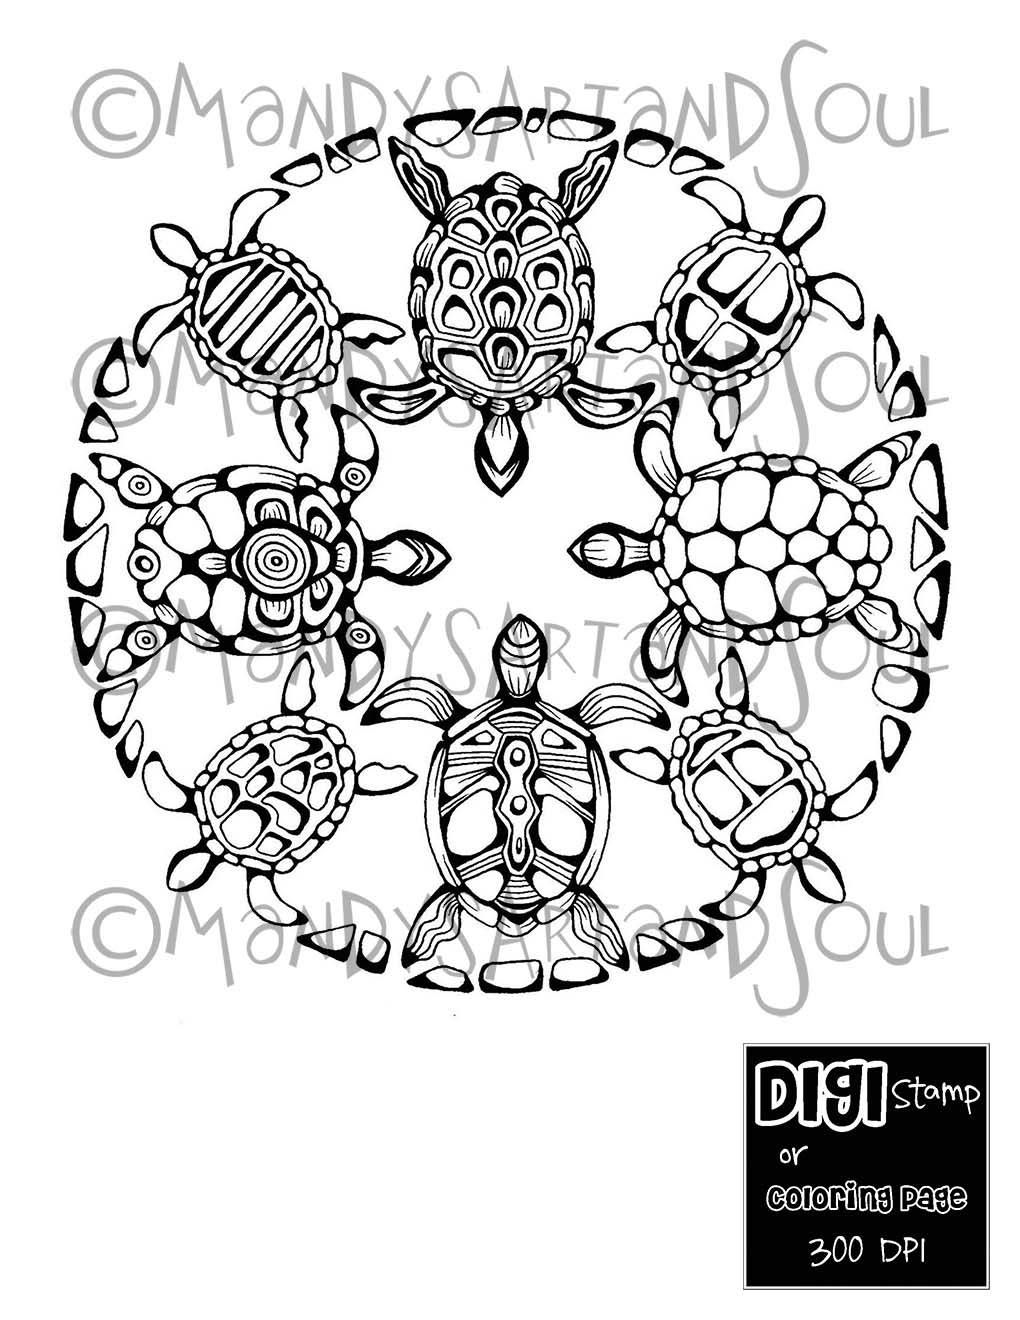 Coloring sheets for adults flamingo - 12 Curated Instantly Printable Coloring Pages And Digi Stamps